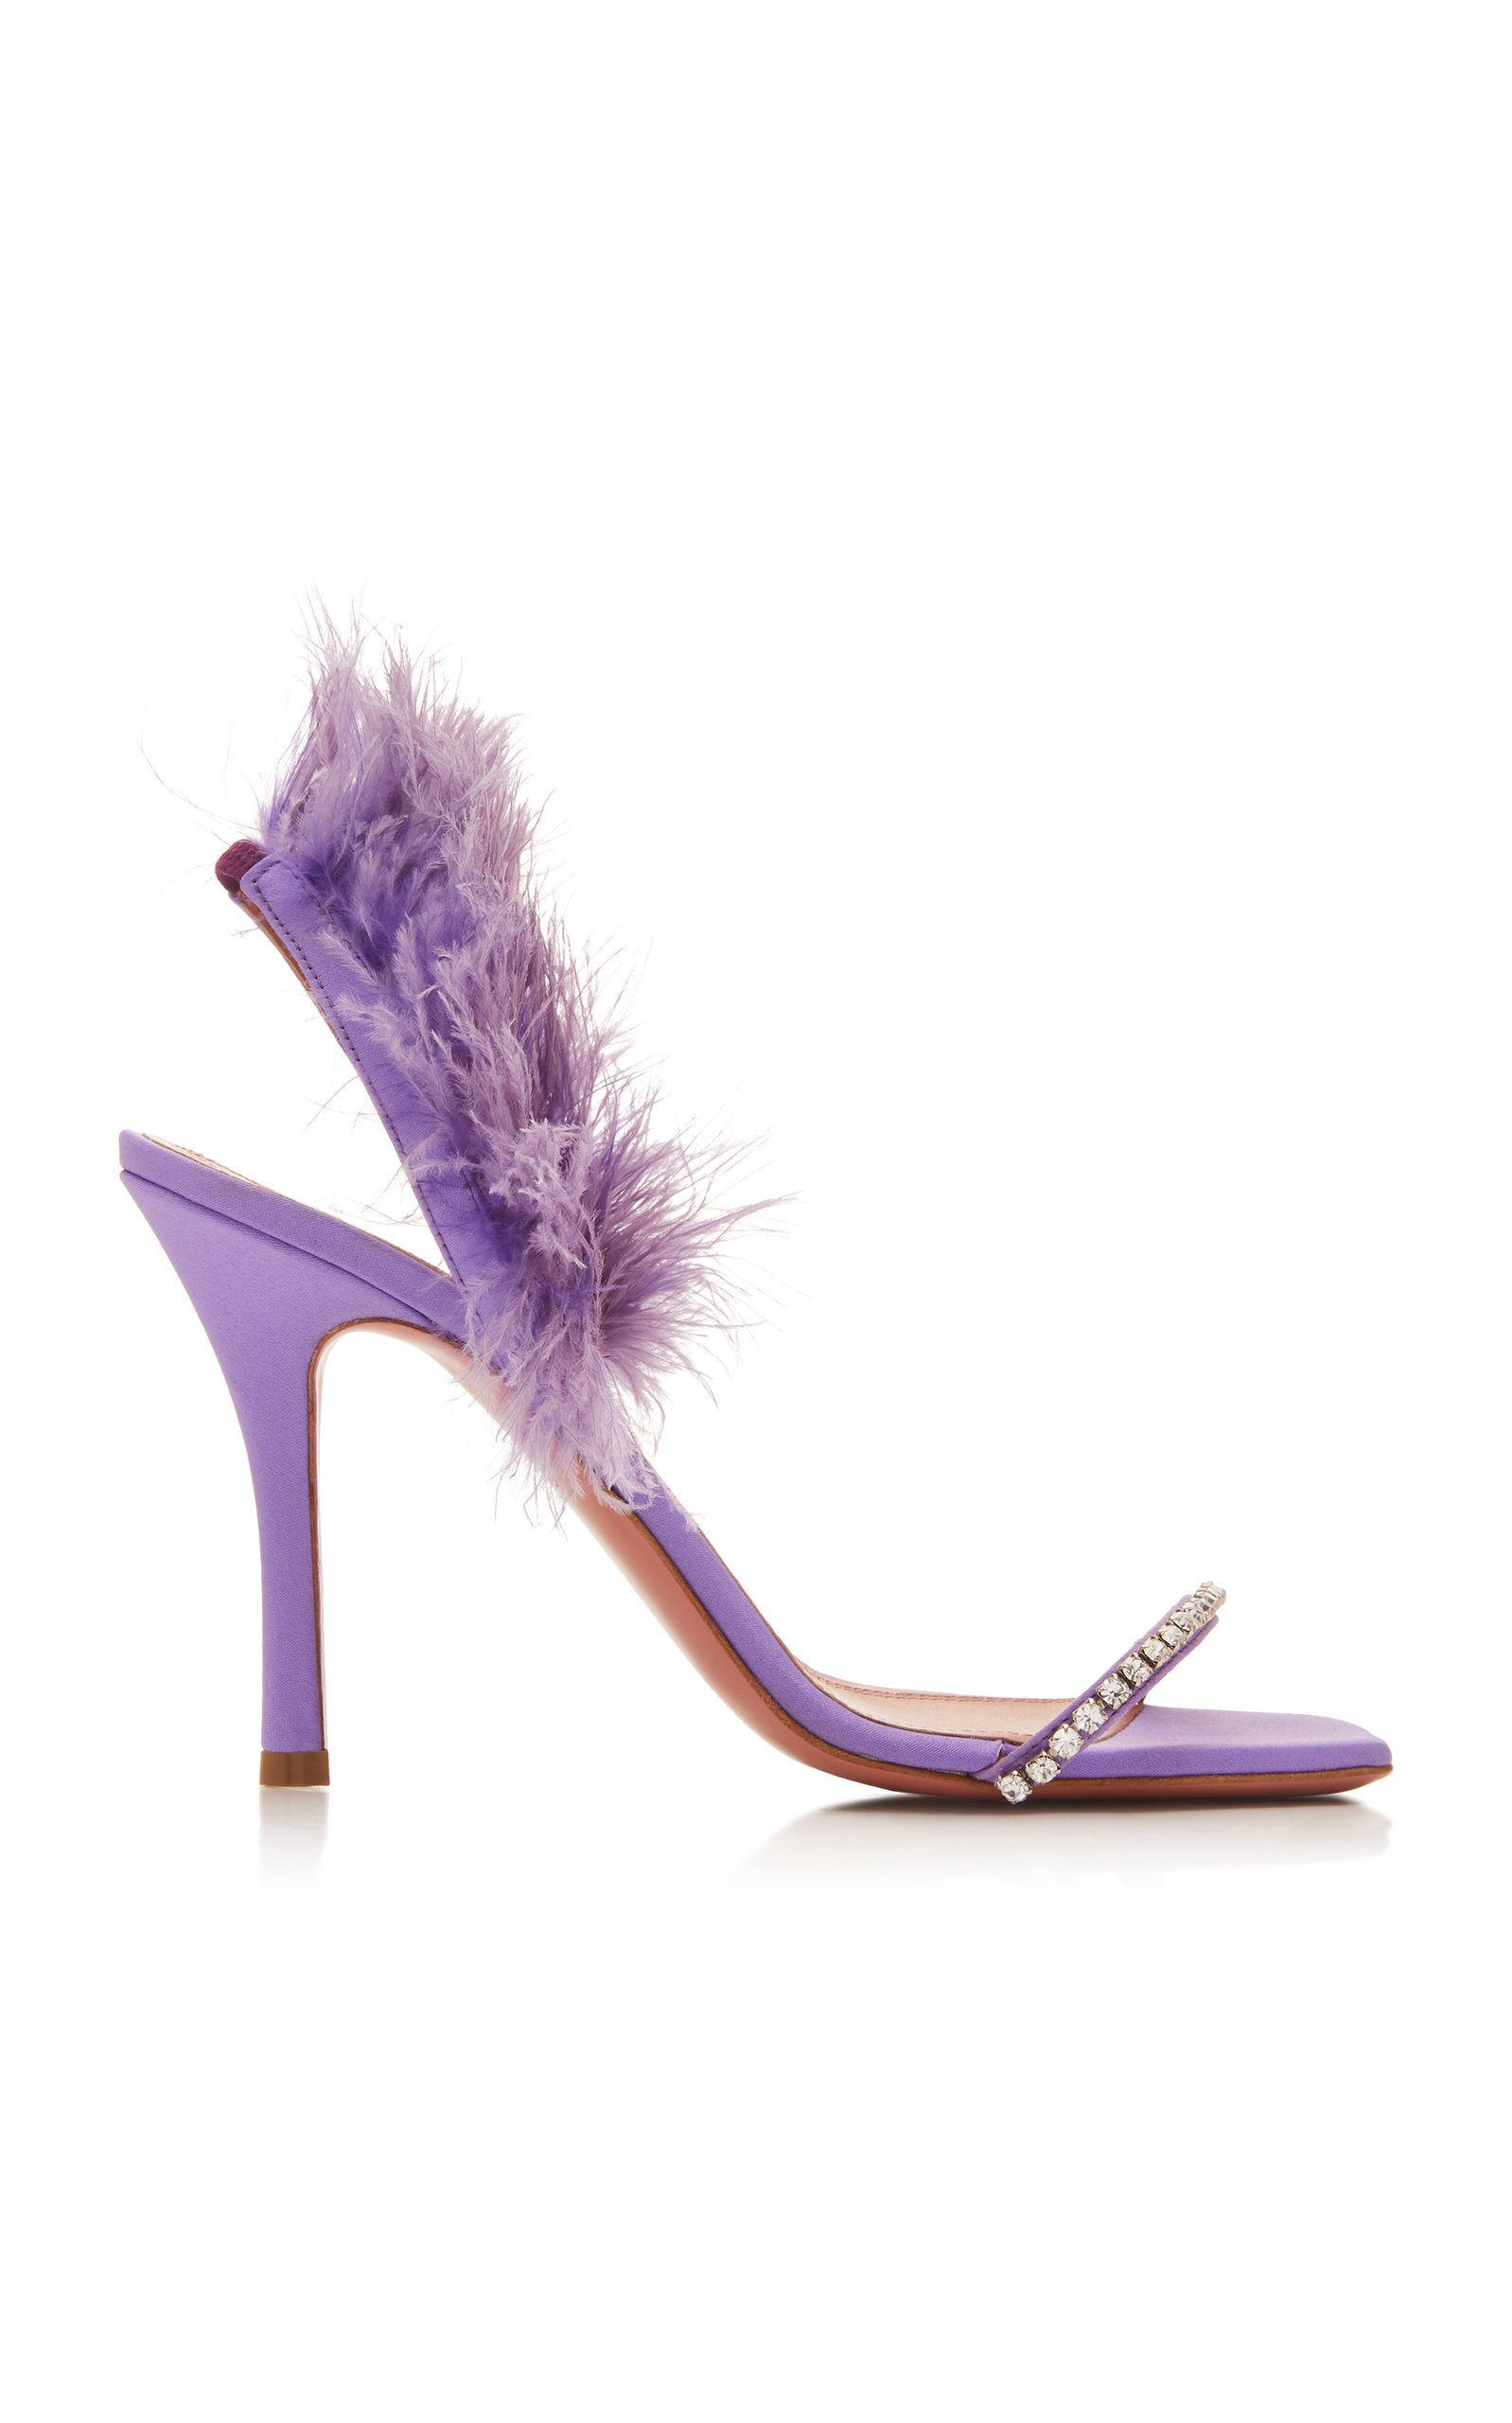 Feather and Crystal Satin Sandals